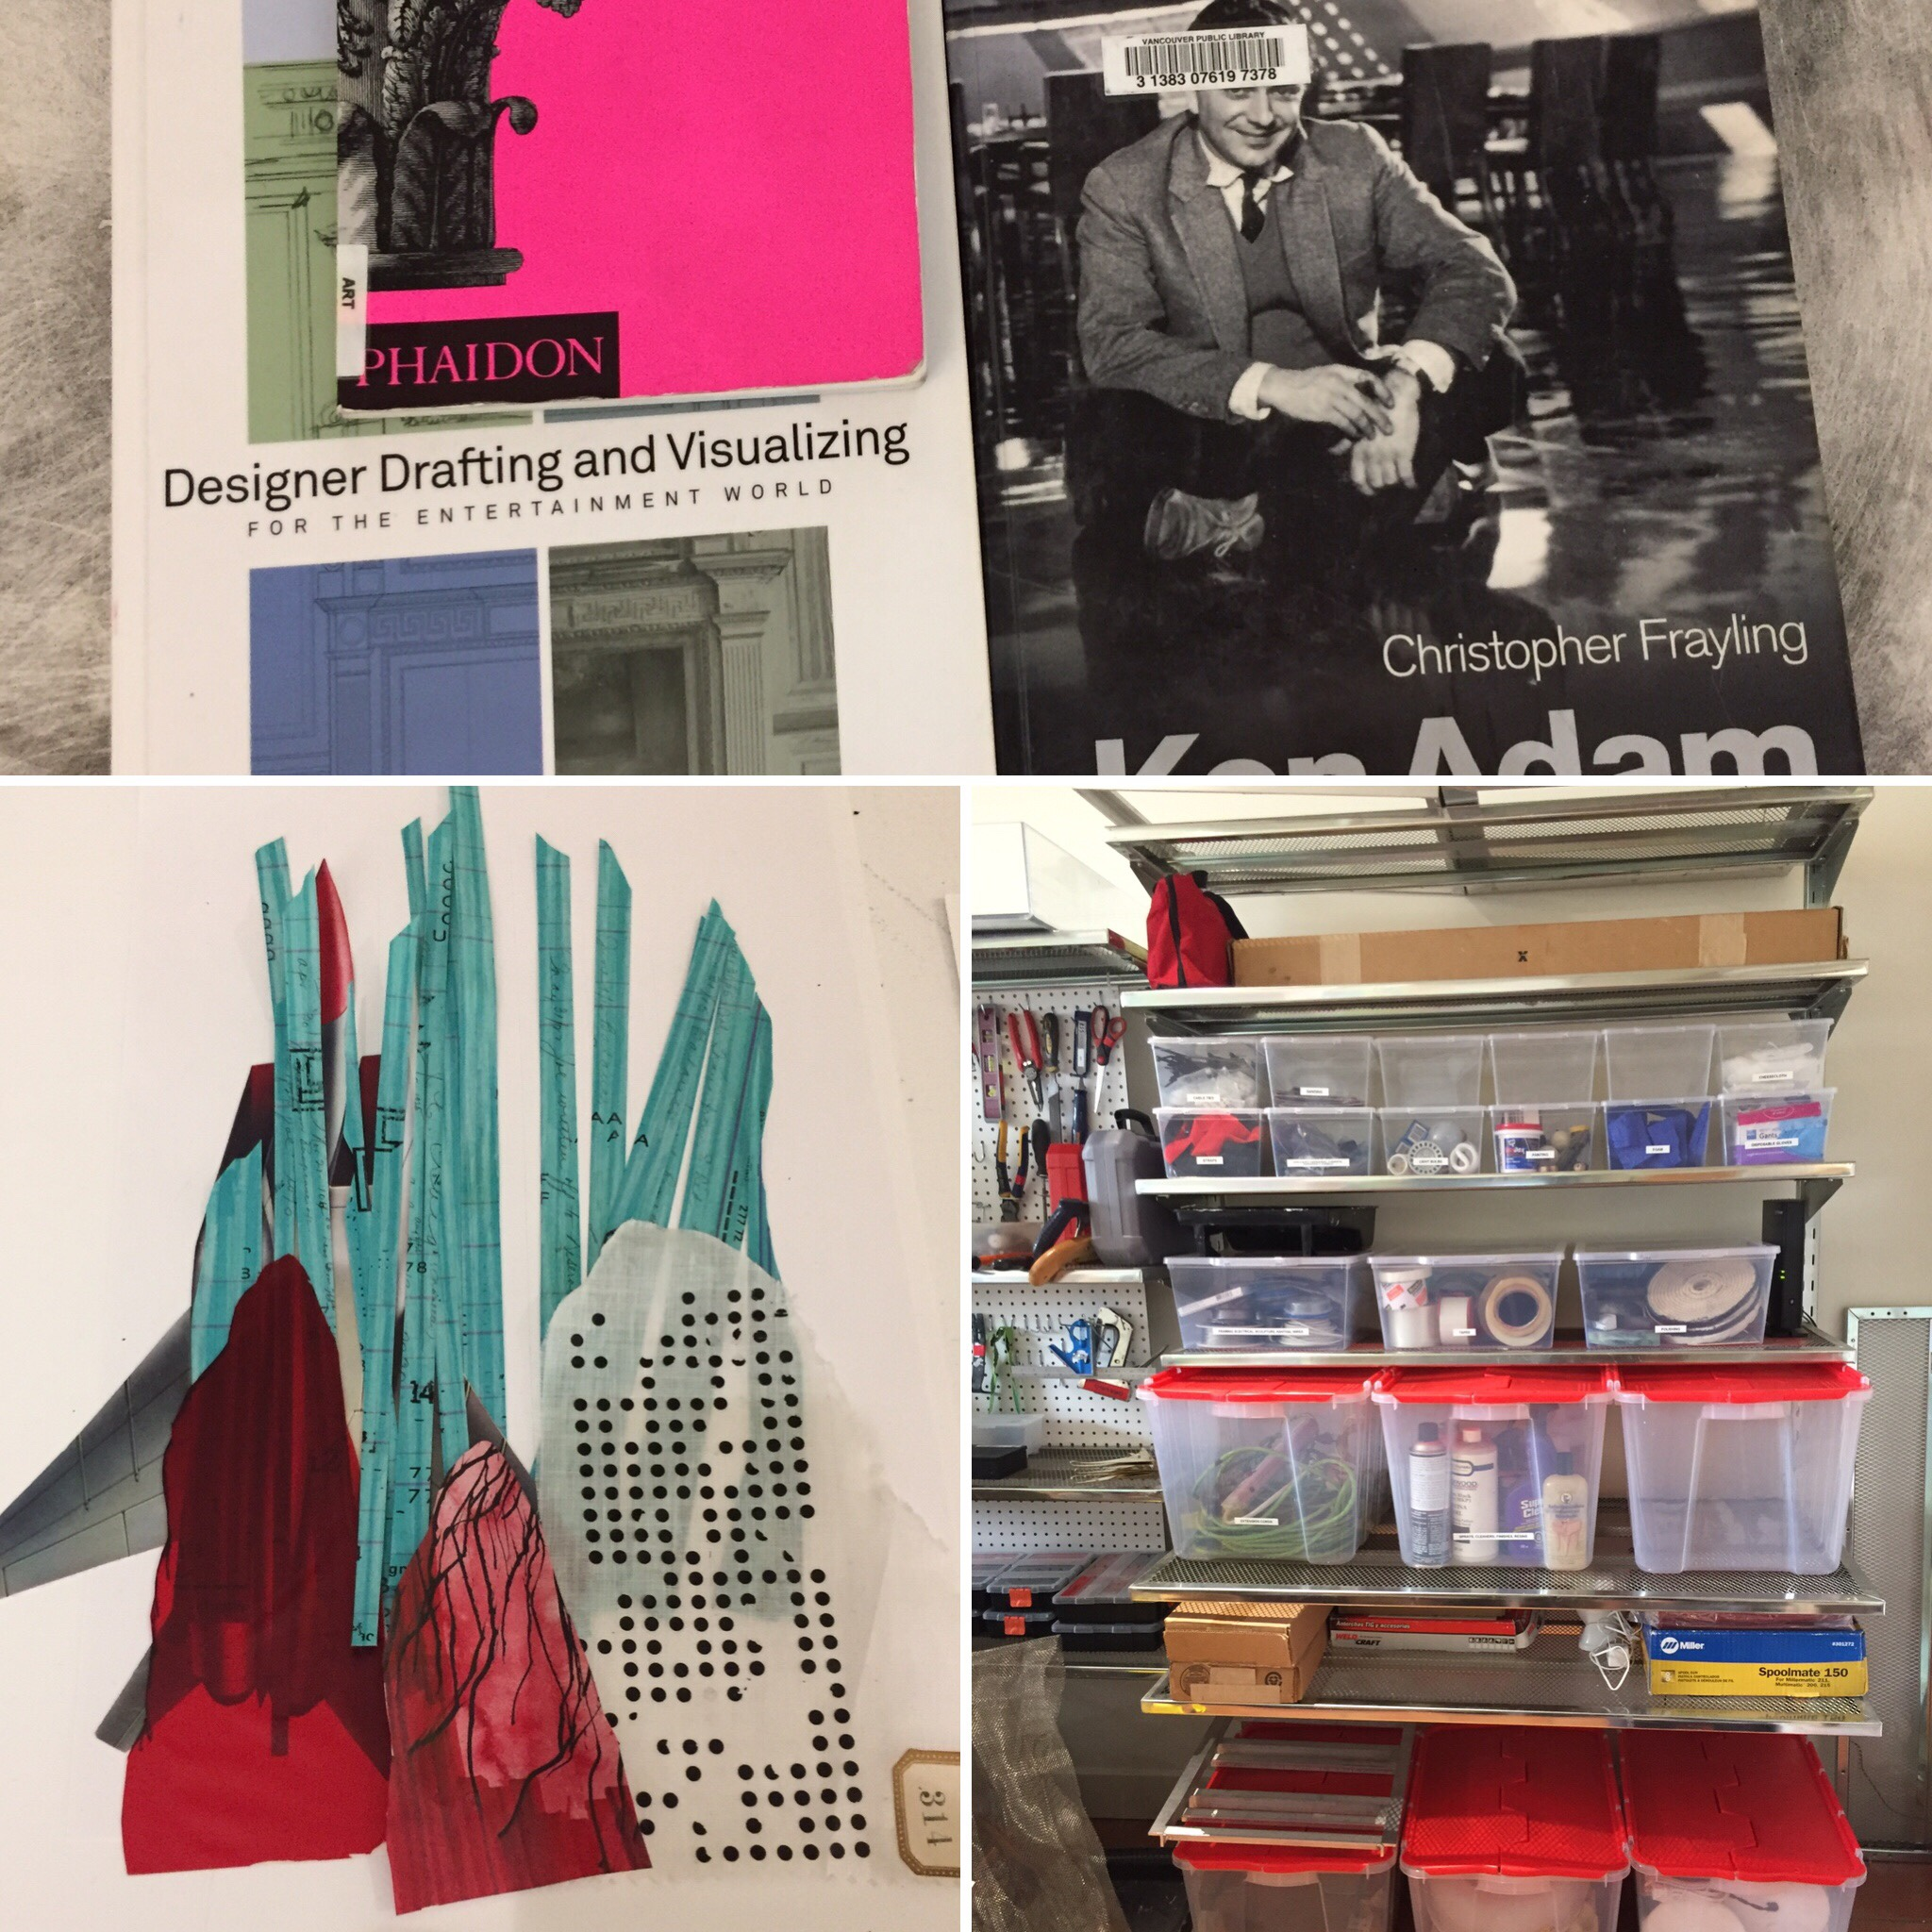 July 4/19 - Rode to library to pick up two books. Have been reading the Ken Adam book and his early life reads like a remarkable European film. Hurrah, got one shelf in workshop done! Happy with how this collage piece is going. Doesn't show how it's going to look.